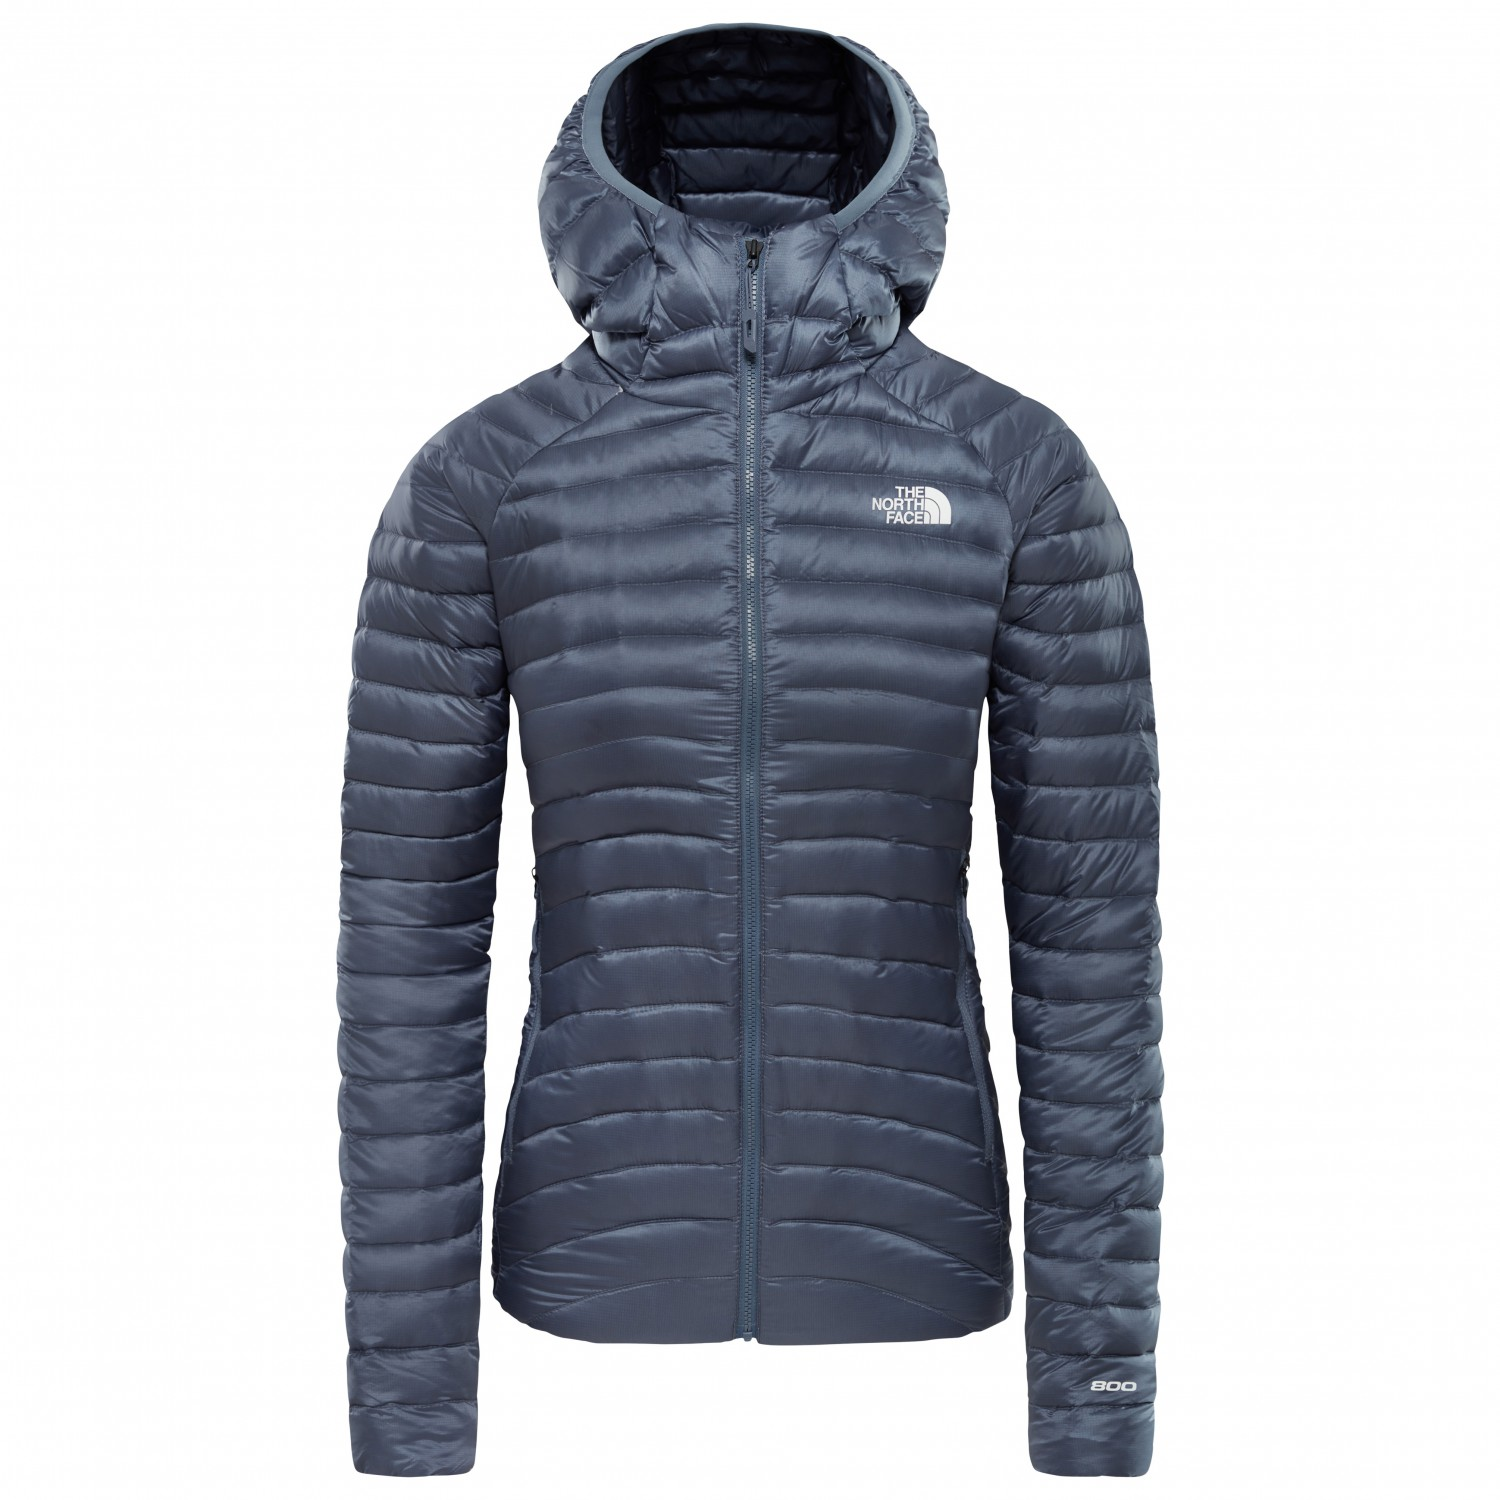 The North Face Women's Impendor Down Hoodie Doudoune